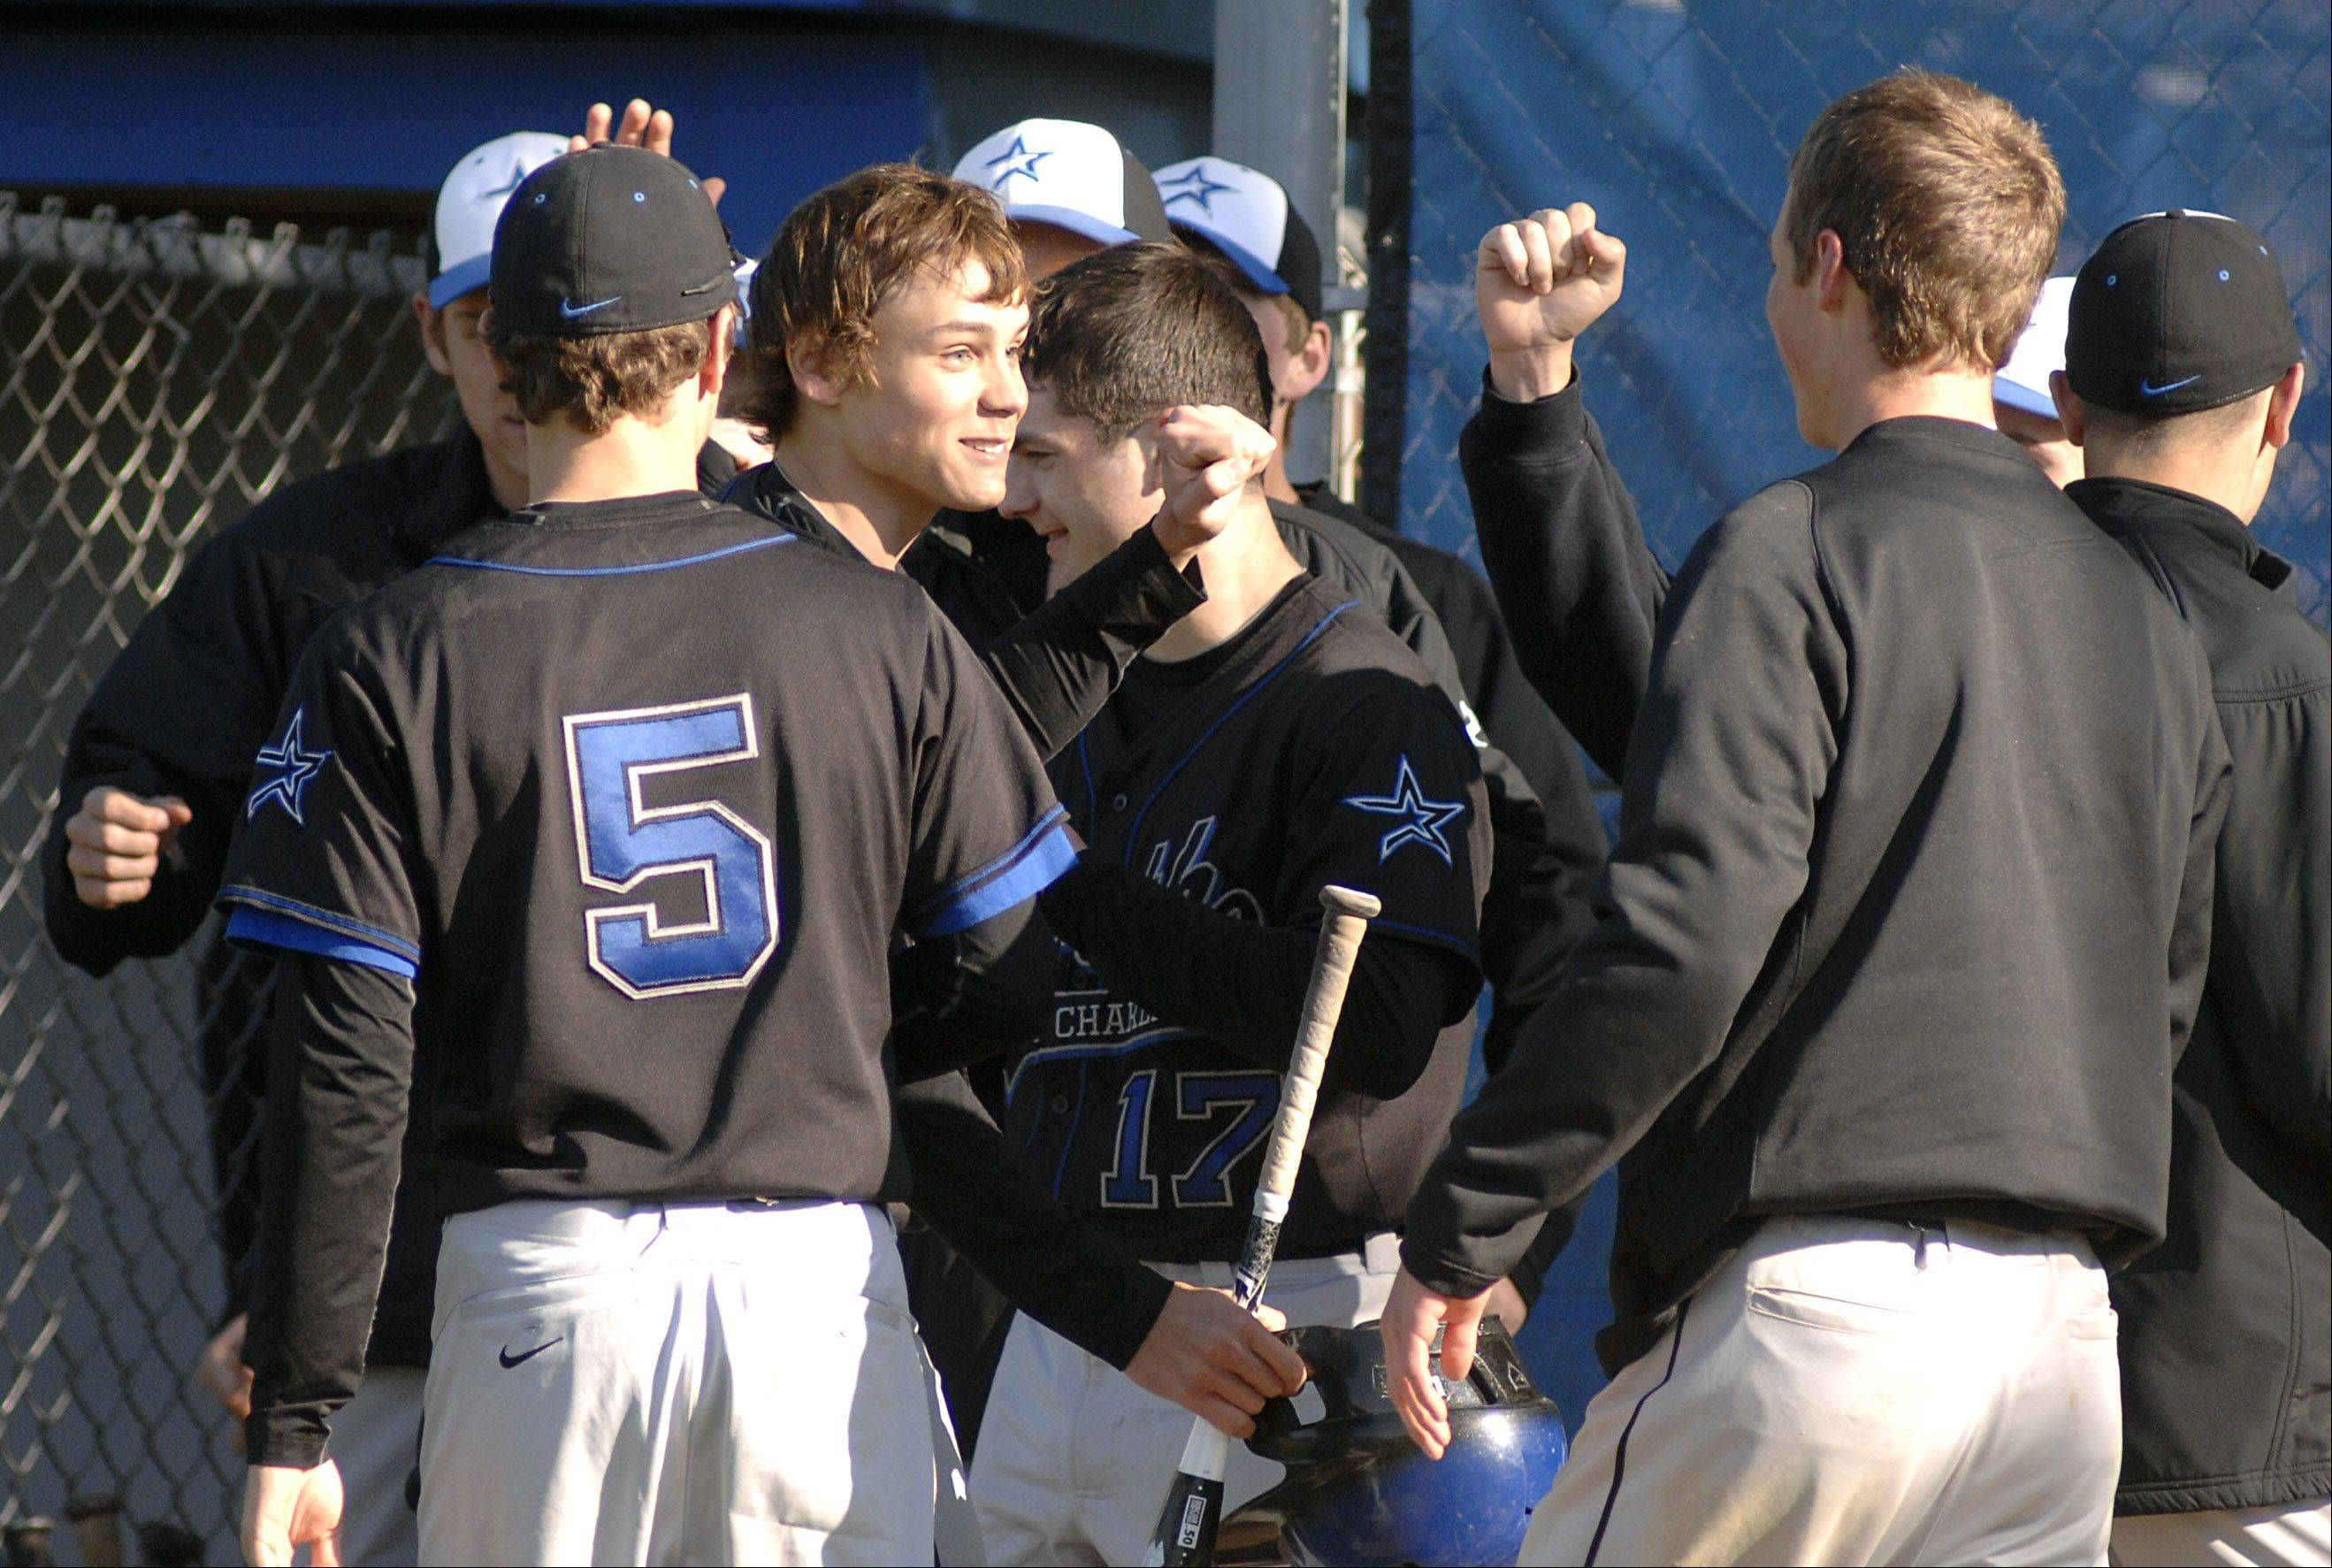 St. Charles North's Kevin Delisi, center, turns around to bumps fists with teammates after scoring a run in the fourth inning on Thursday, April 26.